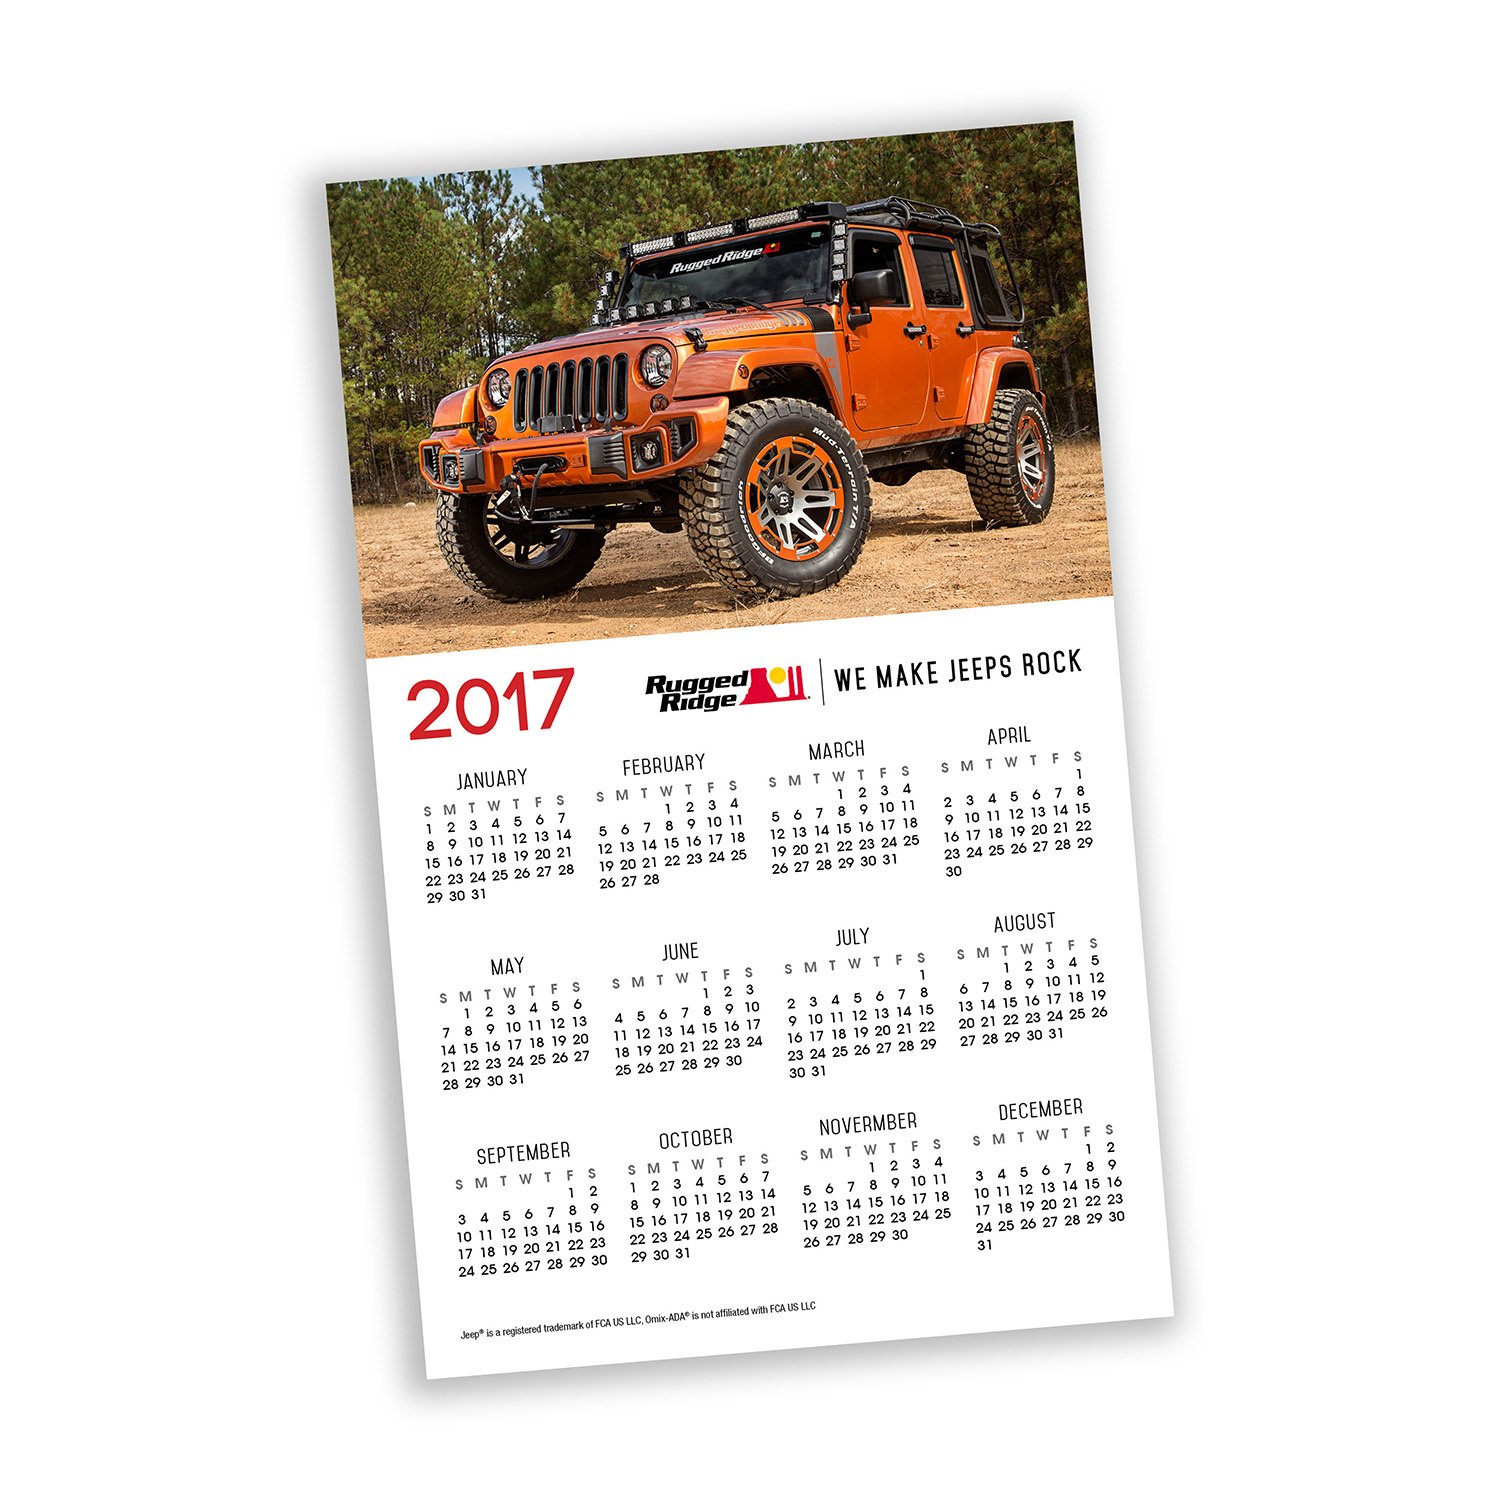 Omix-Ada 11595.41 Magnetic Rugged Ridge Calendar